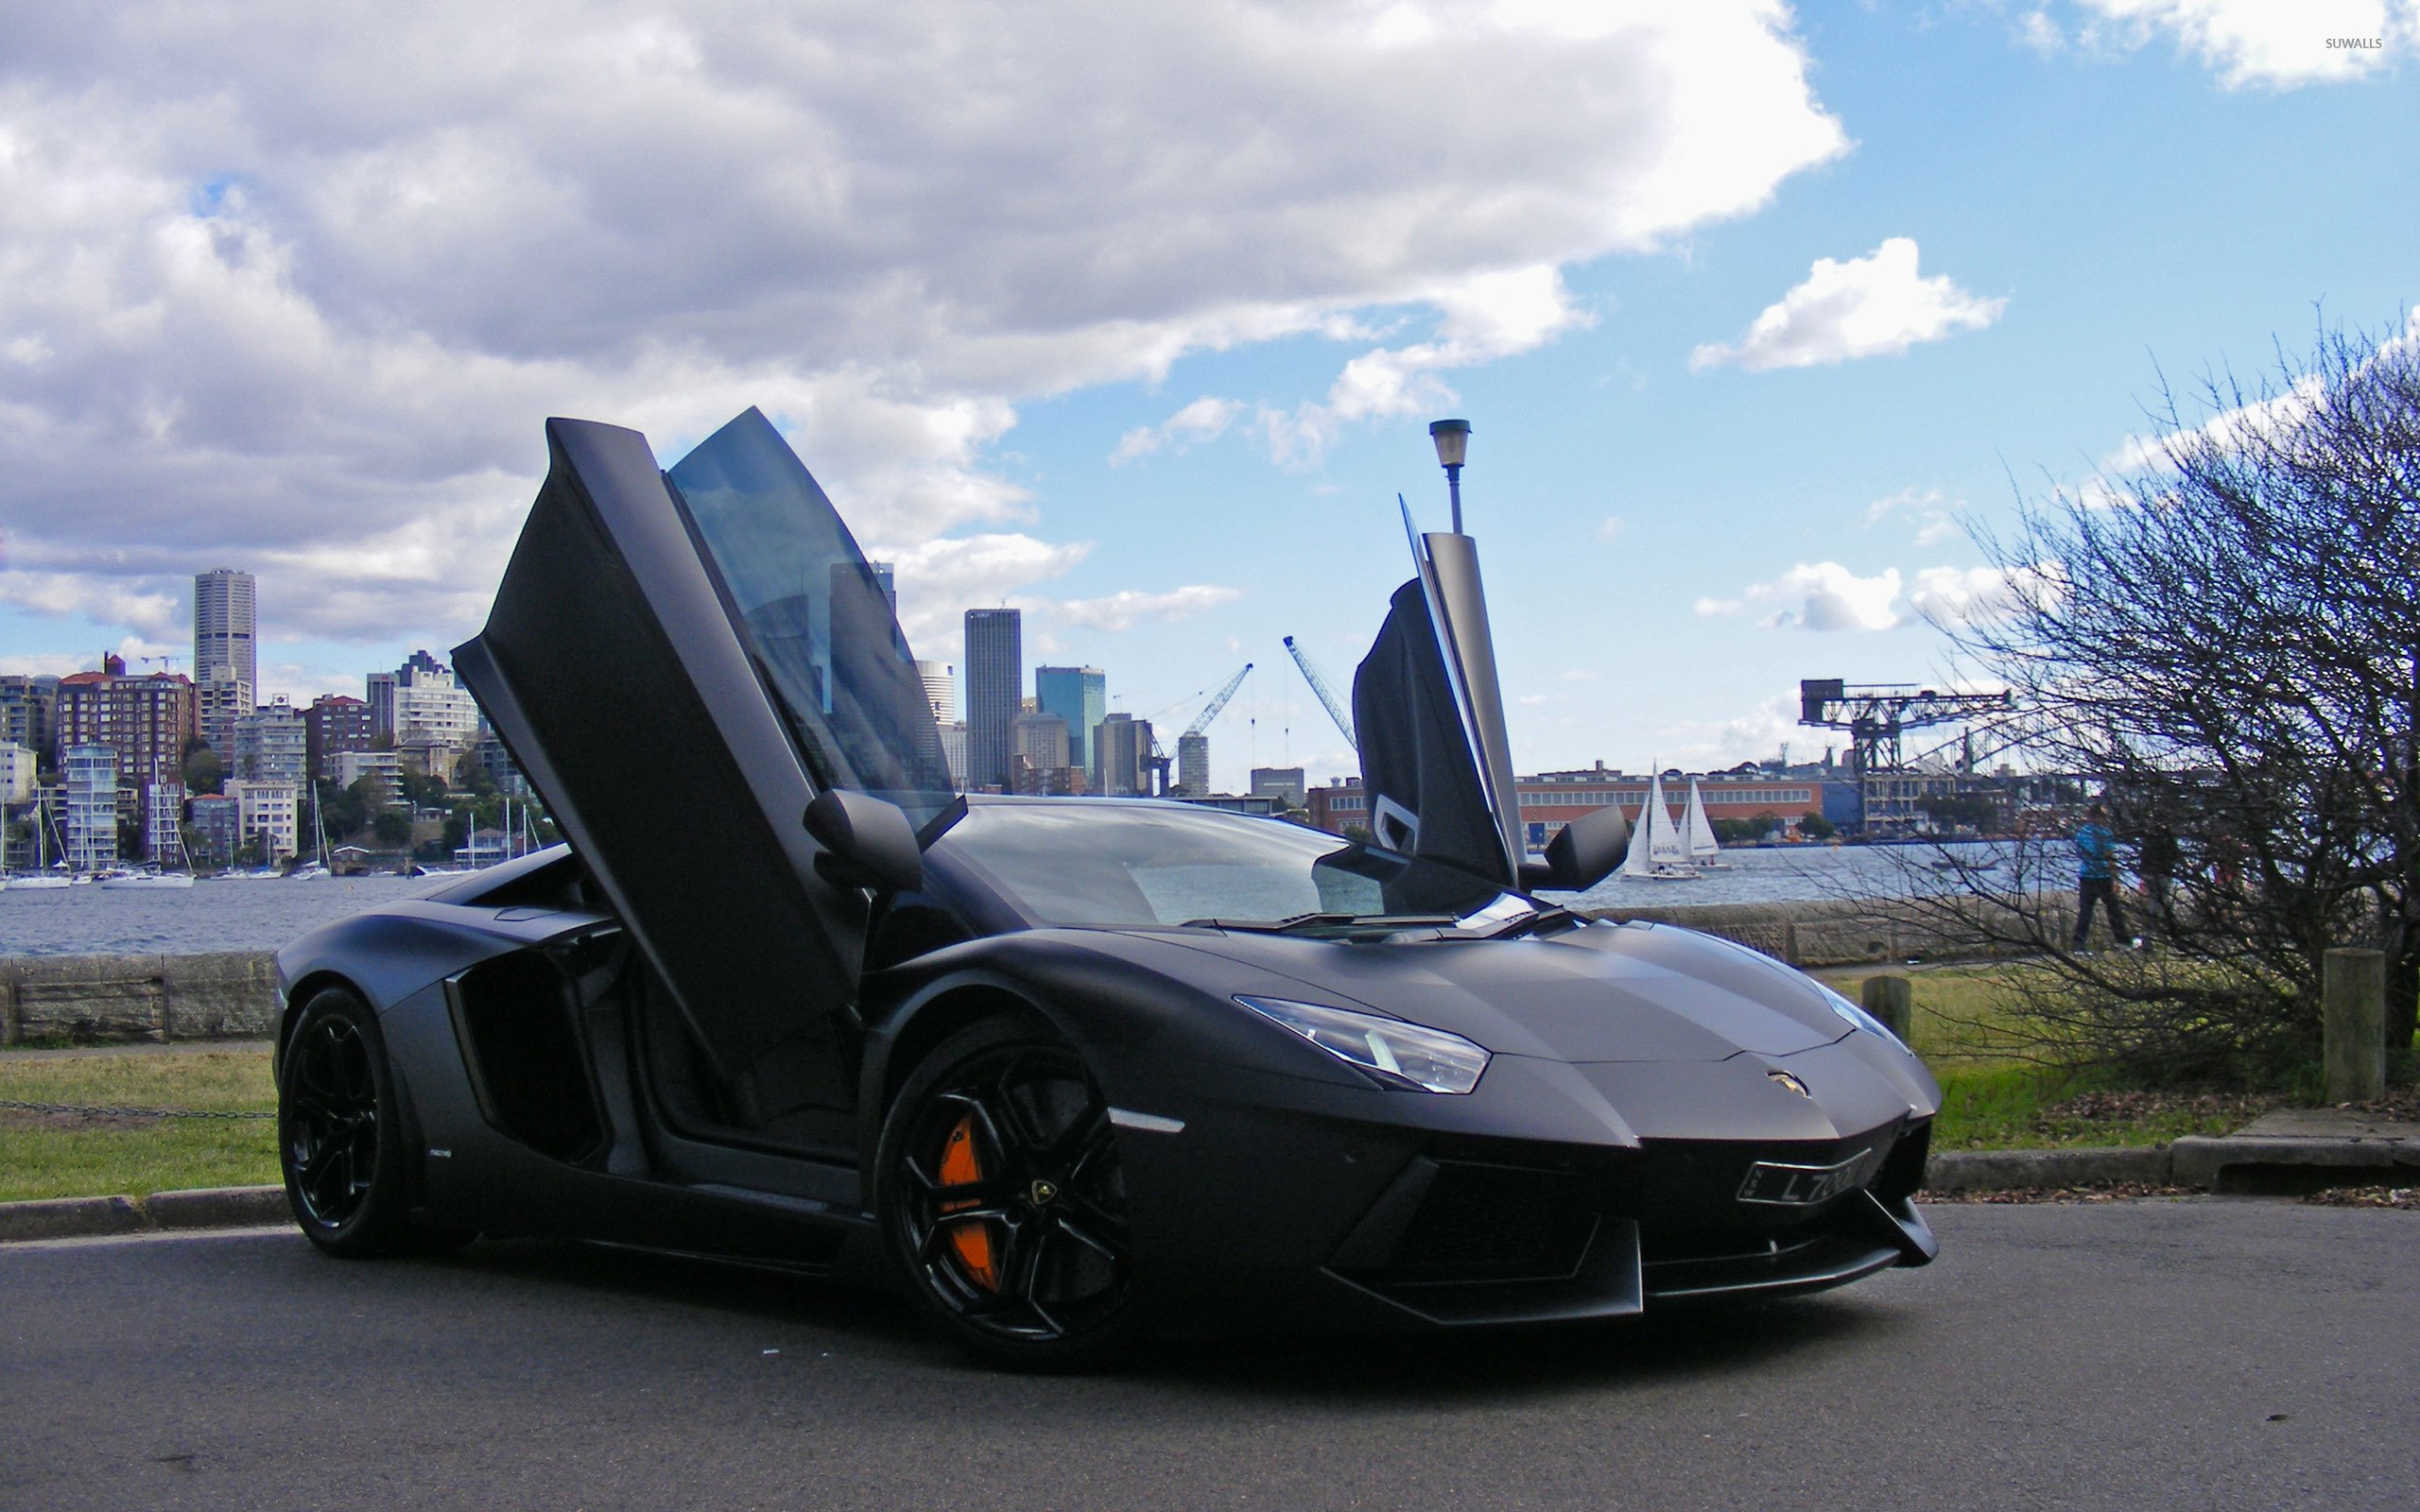 Lamborghini Aventador With Doors Open Wallpaper Car Wallpapers